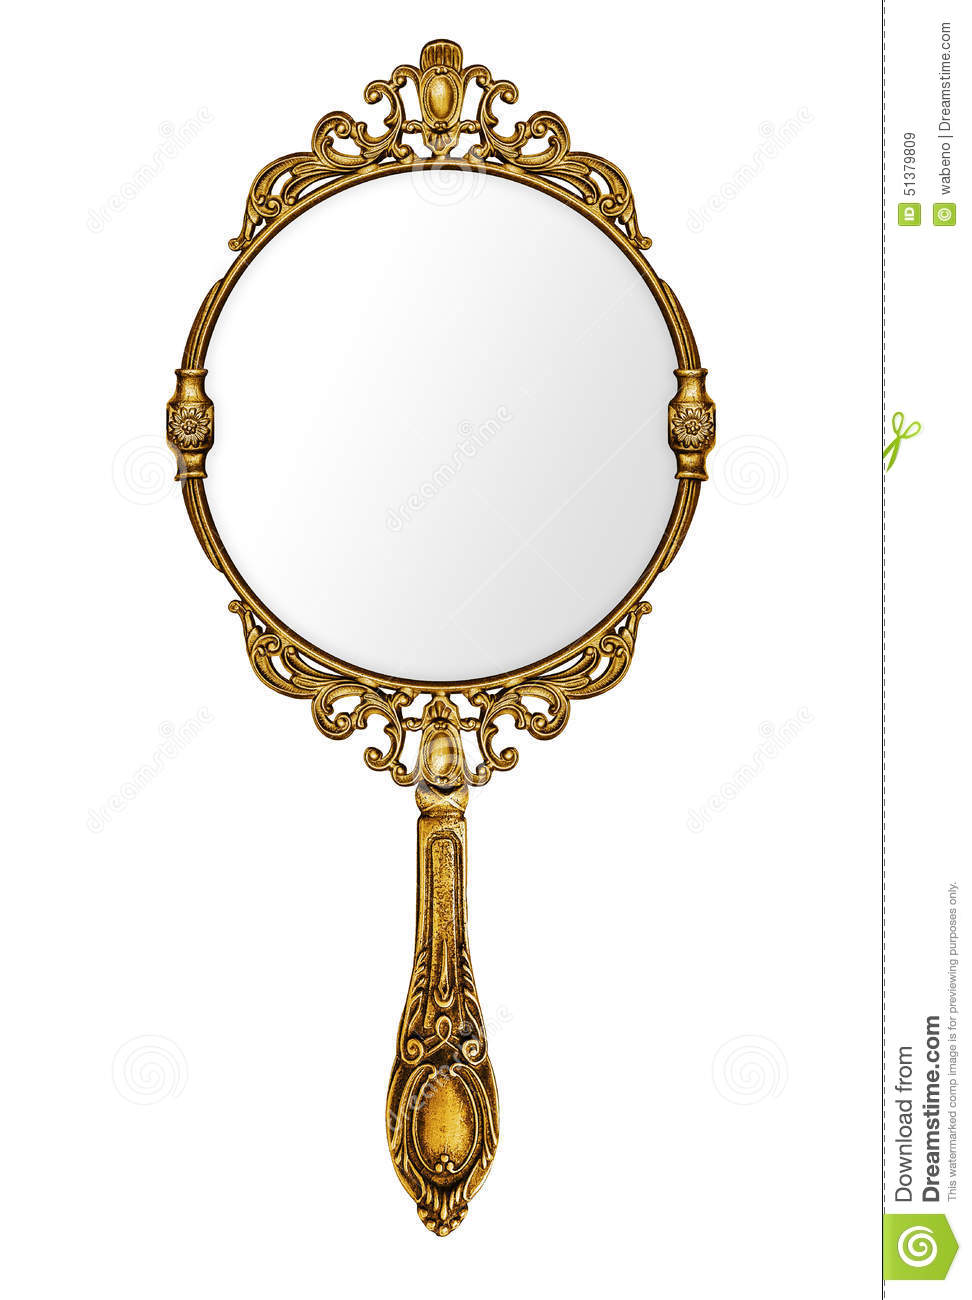 Vintage Hand Mirror | www.imgkid.com - The Image Kid Has It! Vintage Hand Mirror Clipart